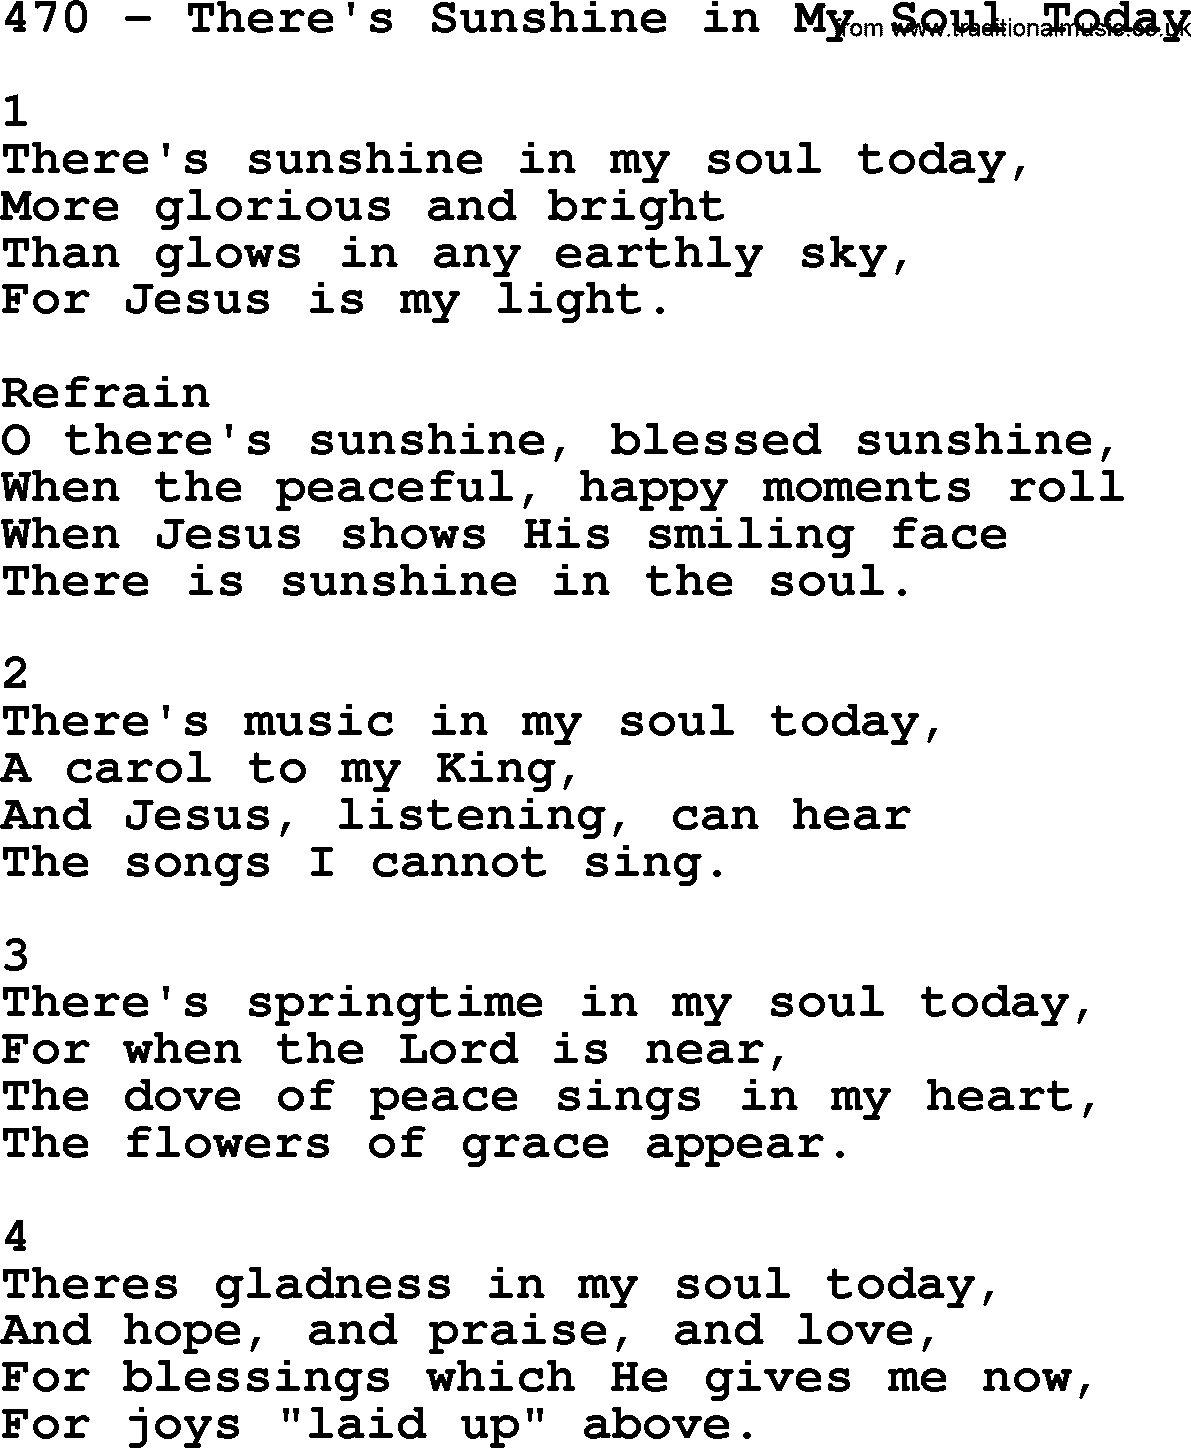 adventist hymnal song 470 there s sunshine in my soul today with